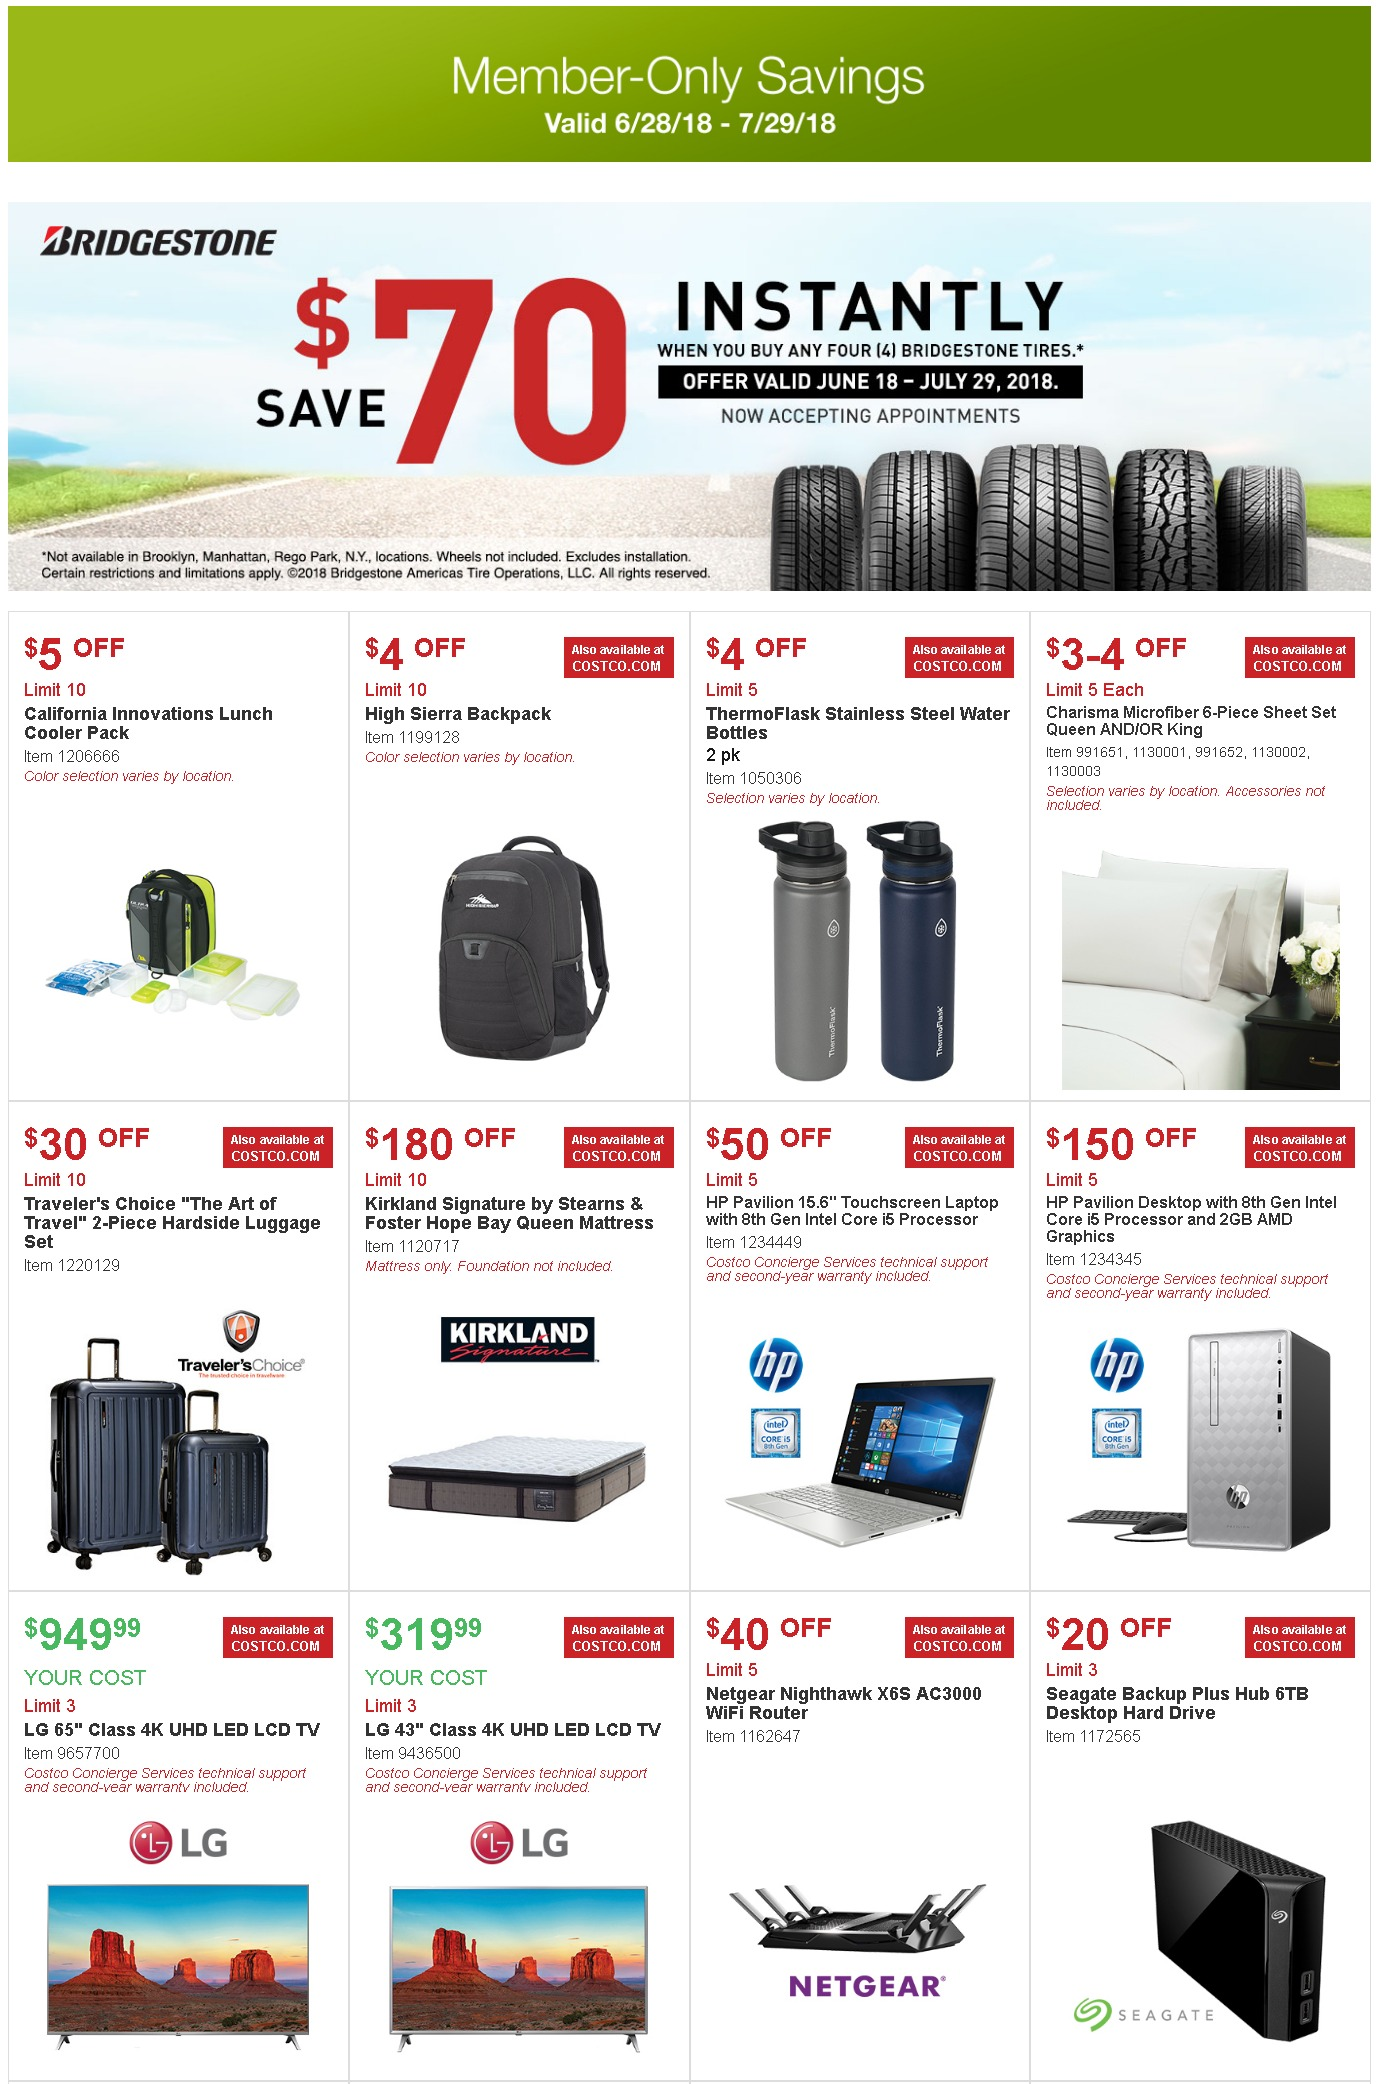 costco coupon offers june 28 july 29 2018